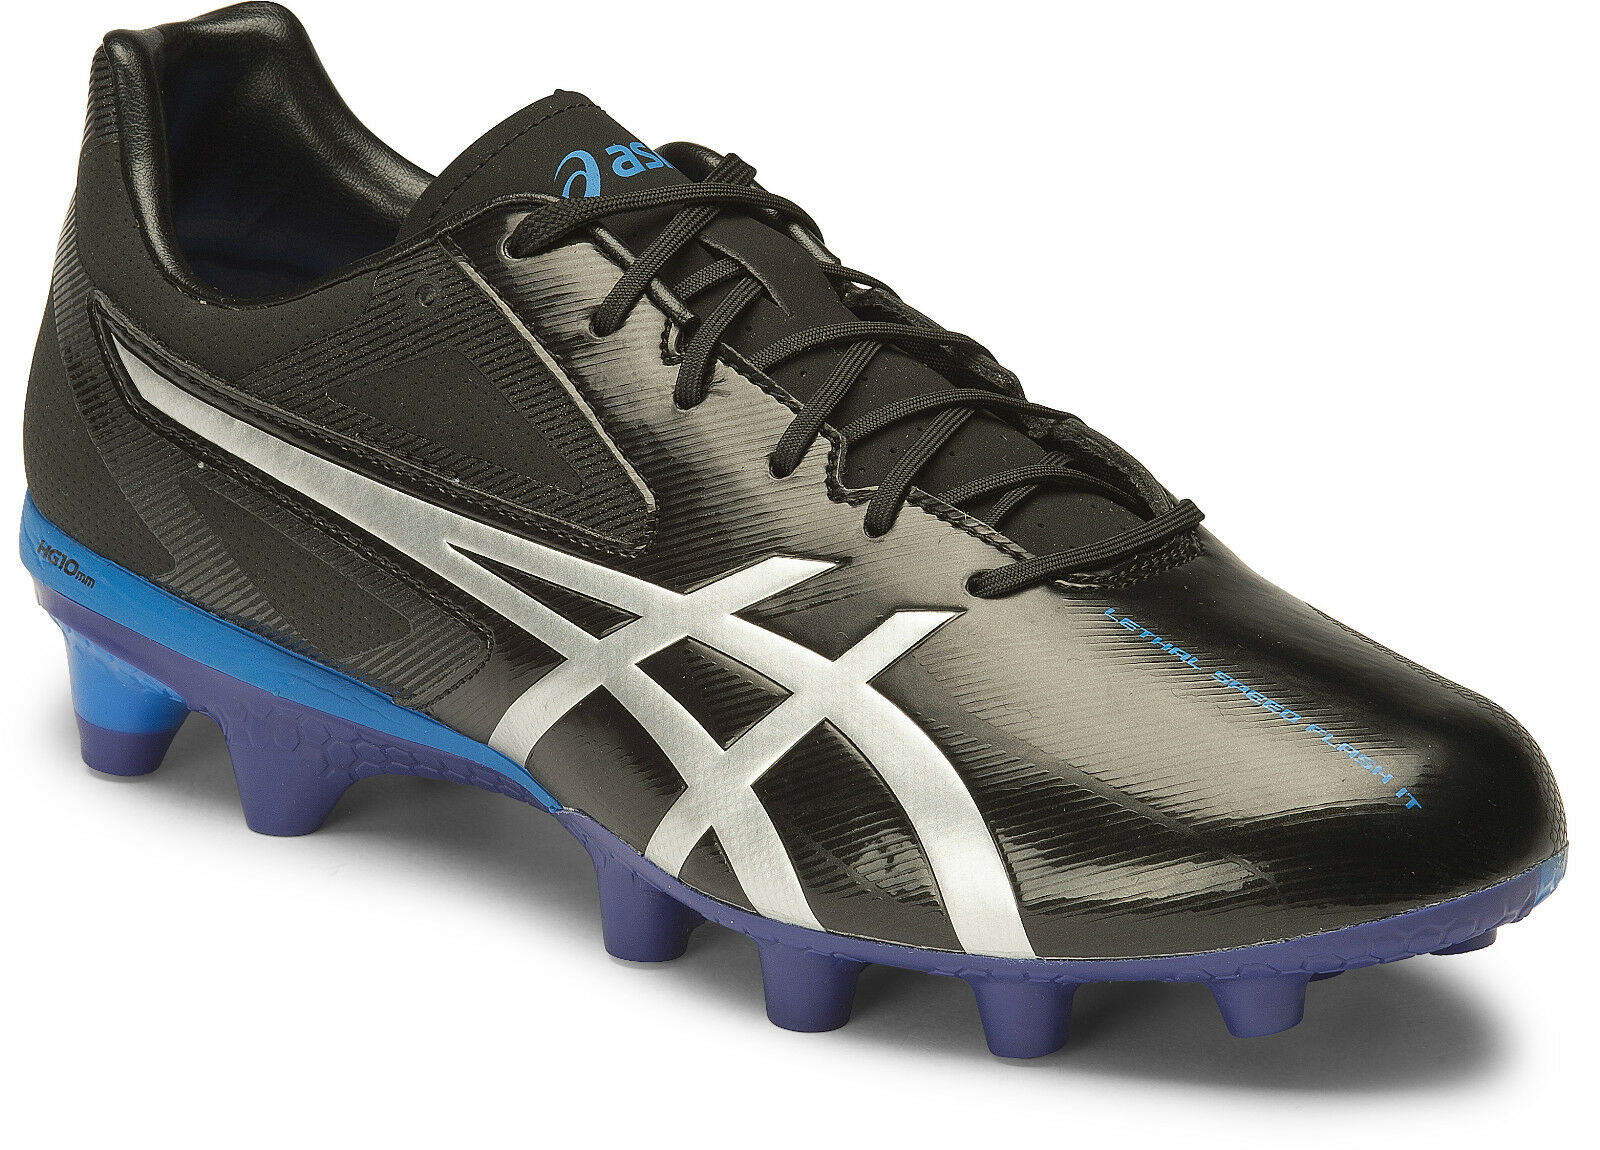 Asics Lethal Speed Flash IT IT Flash Uomo Football Shoes (9093) + Free Aus Delivery ec082c